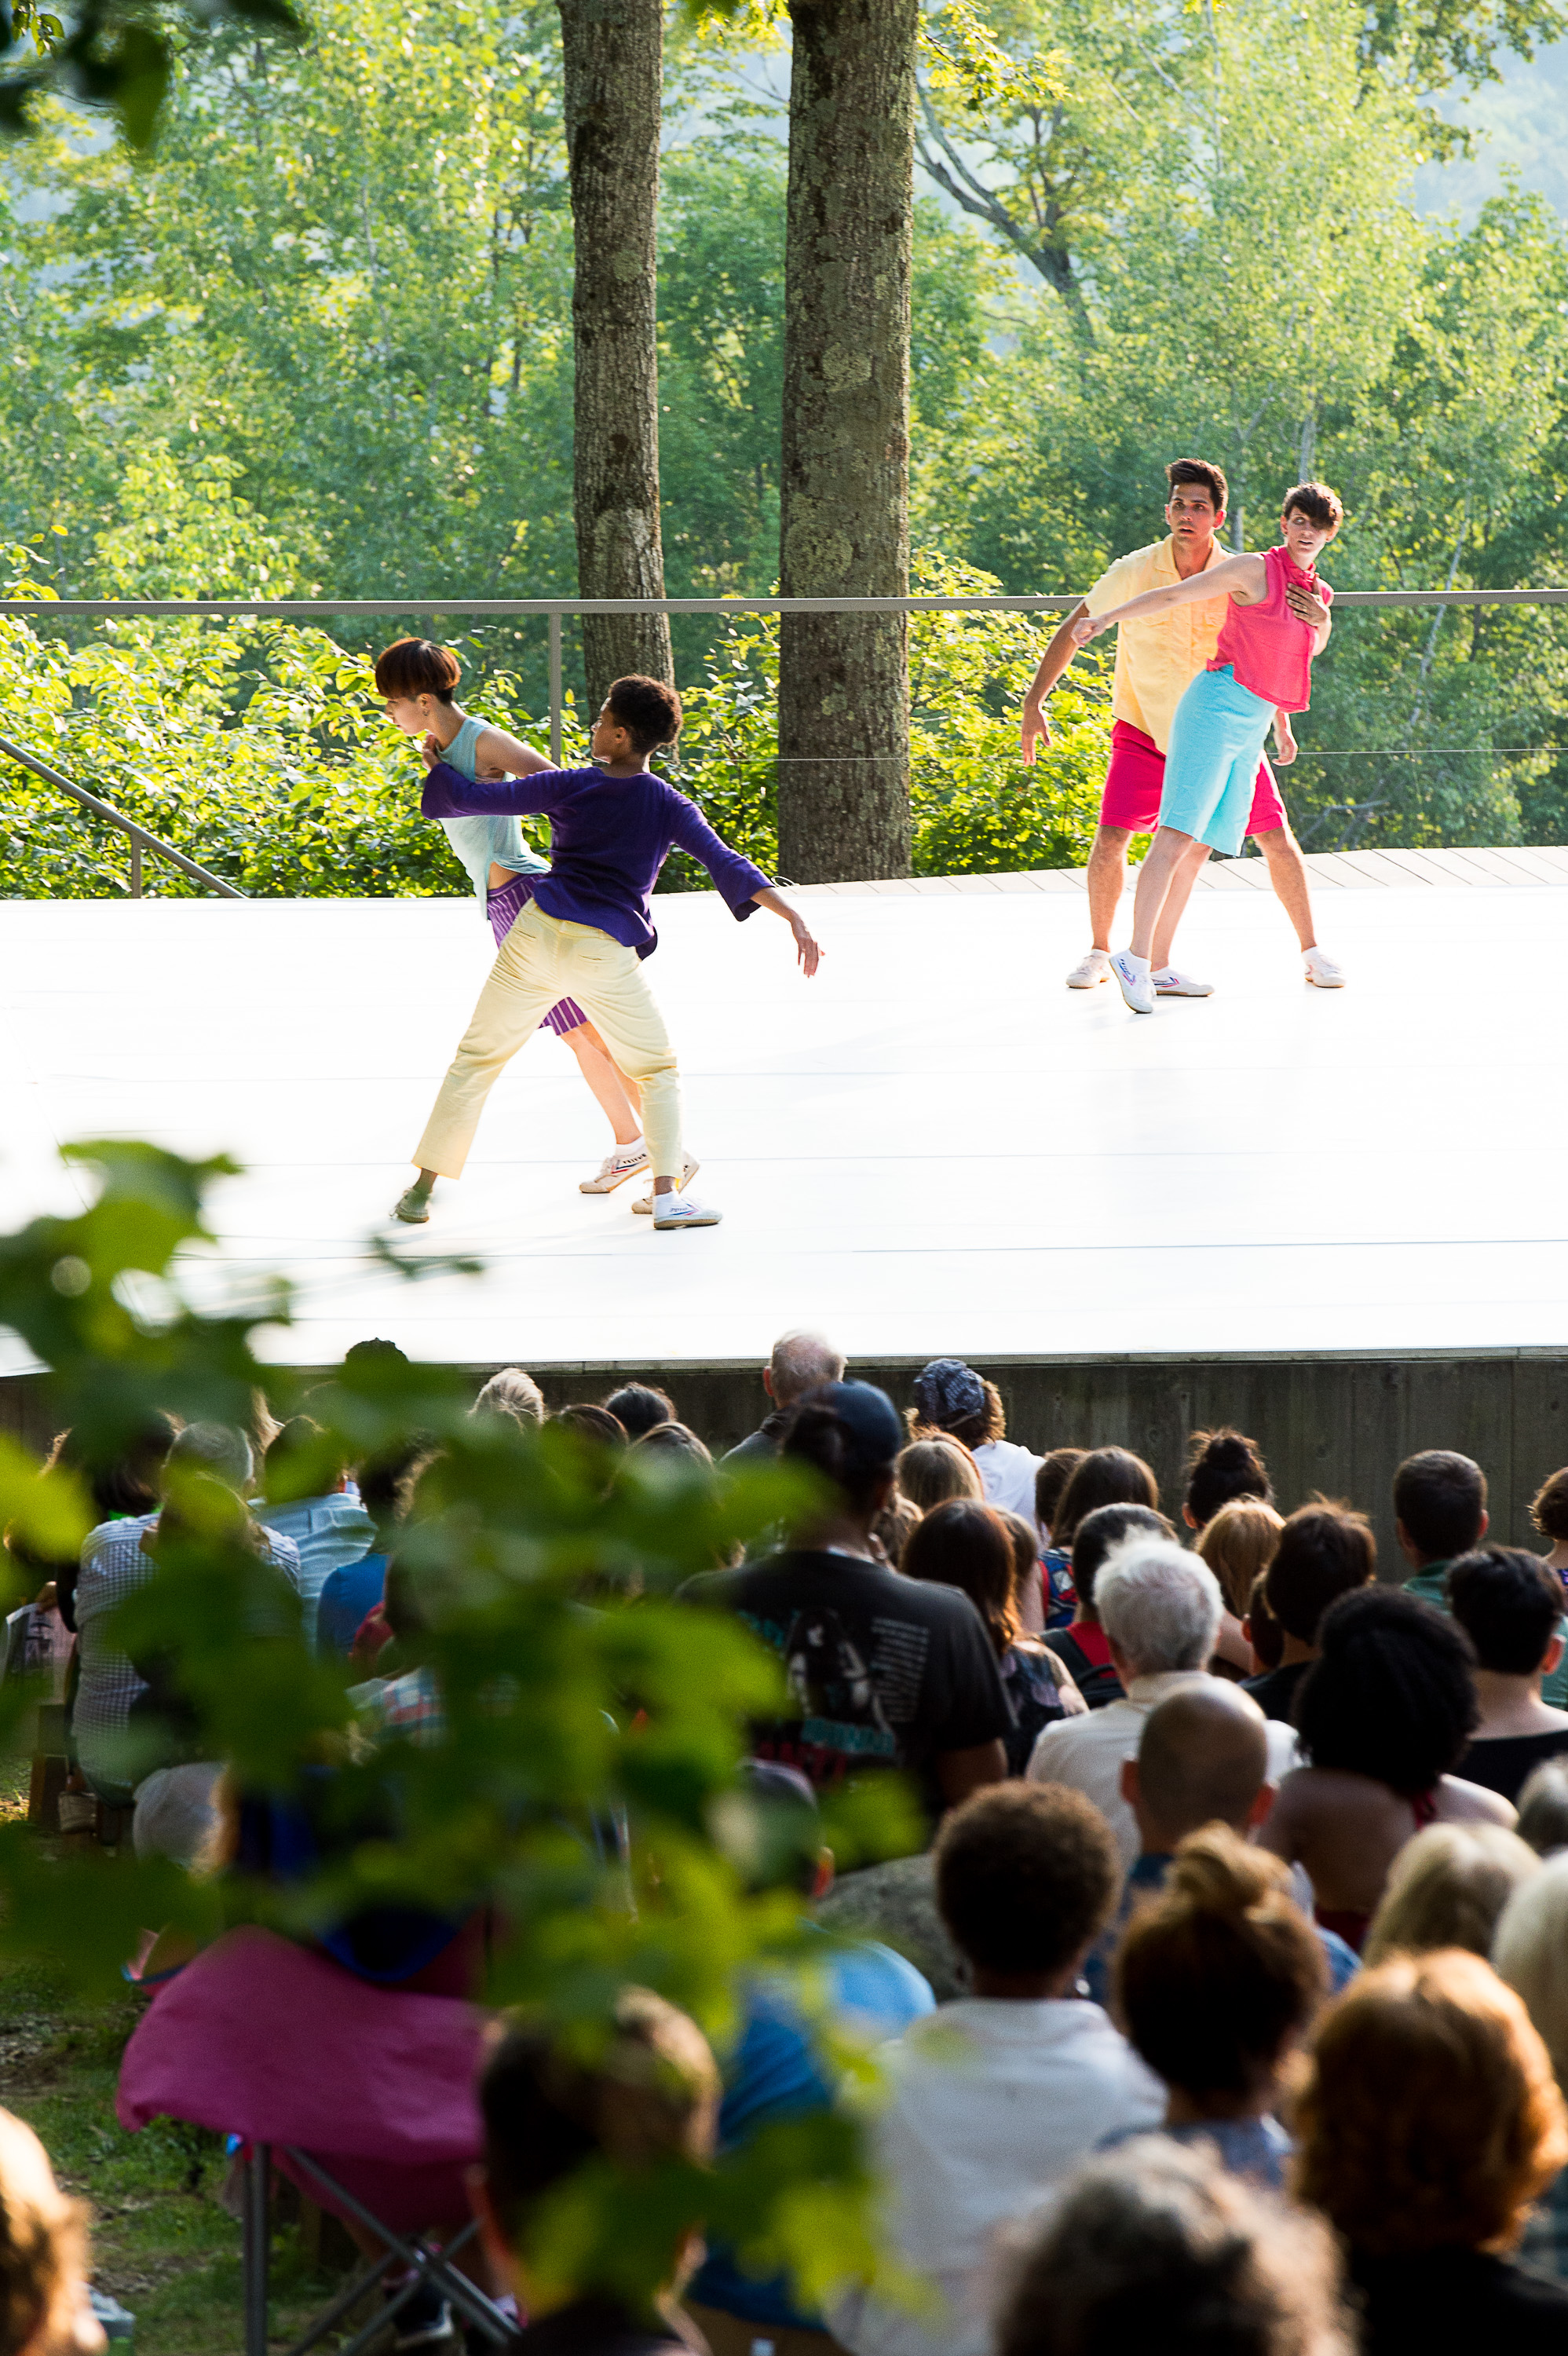 photo by Christopher Duggan; courtesy of Jacob's Pillow Dance